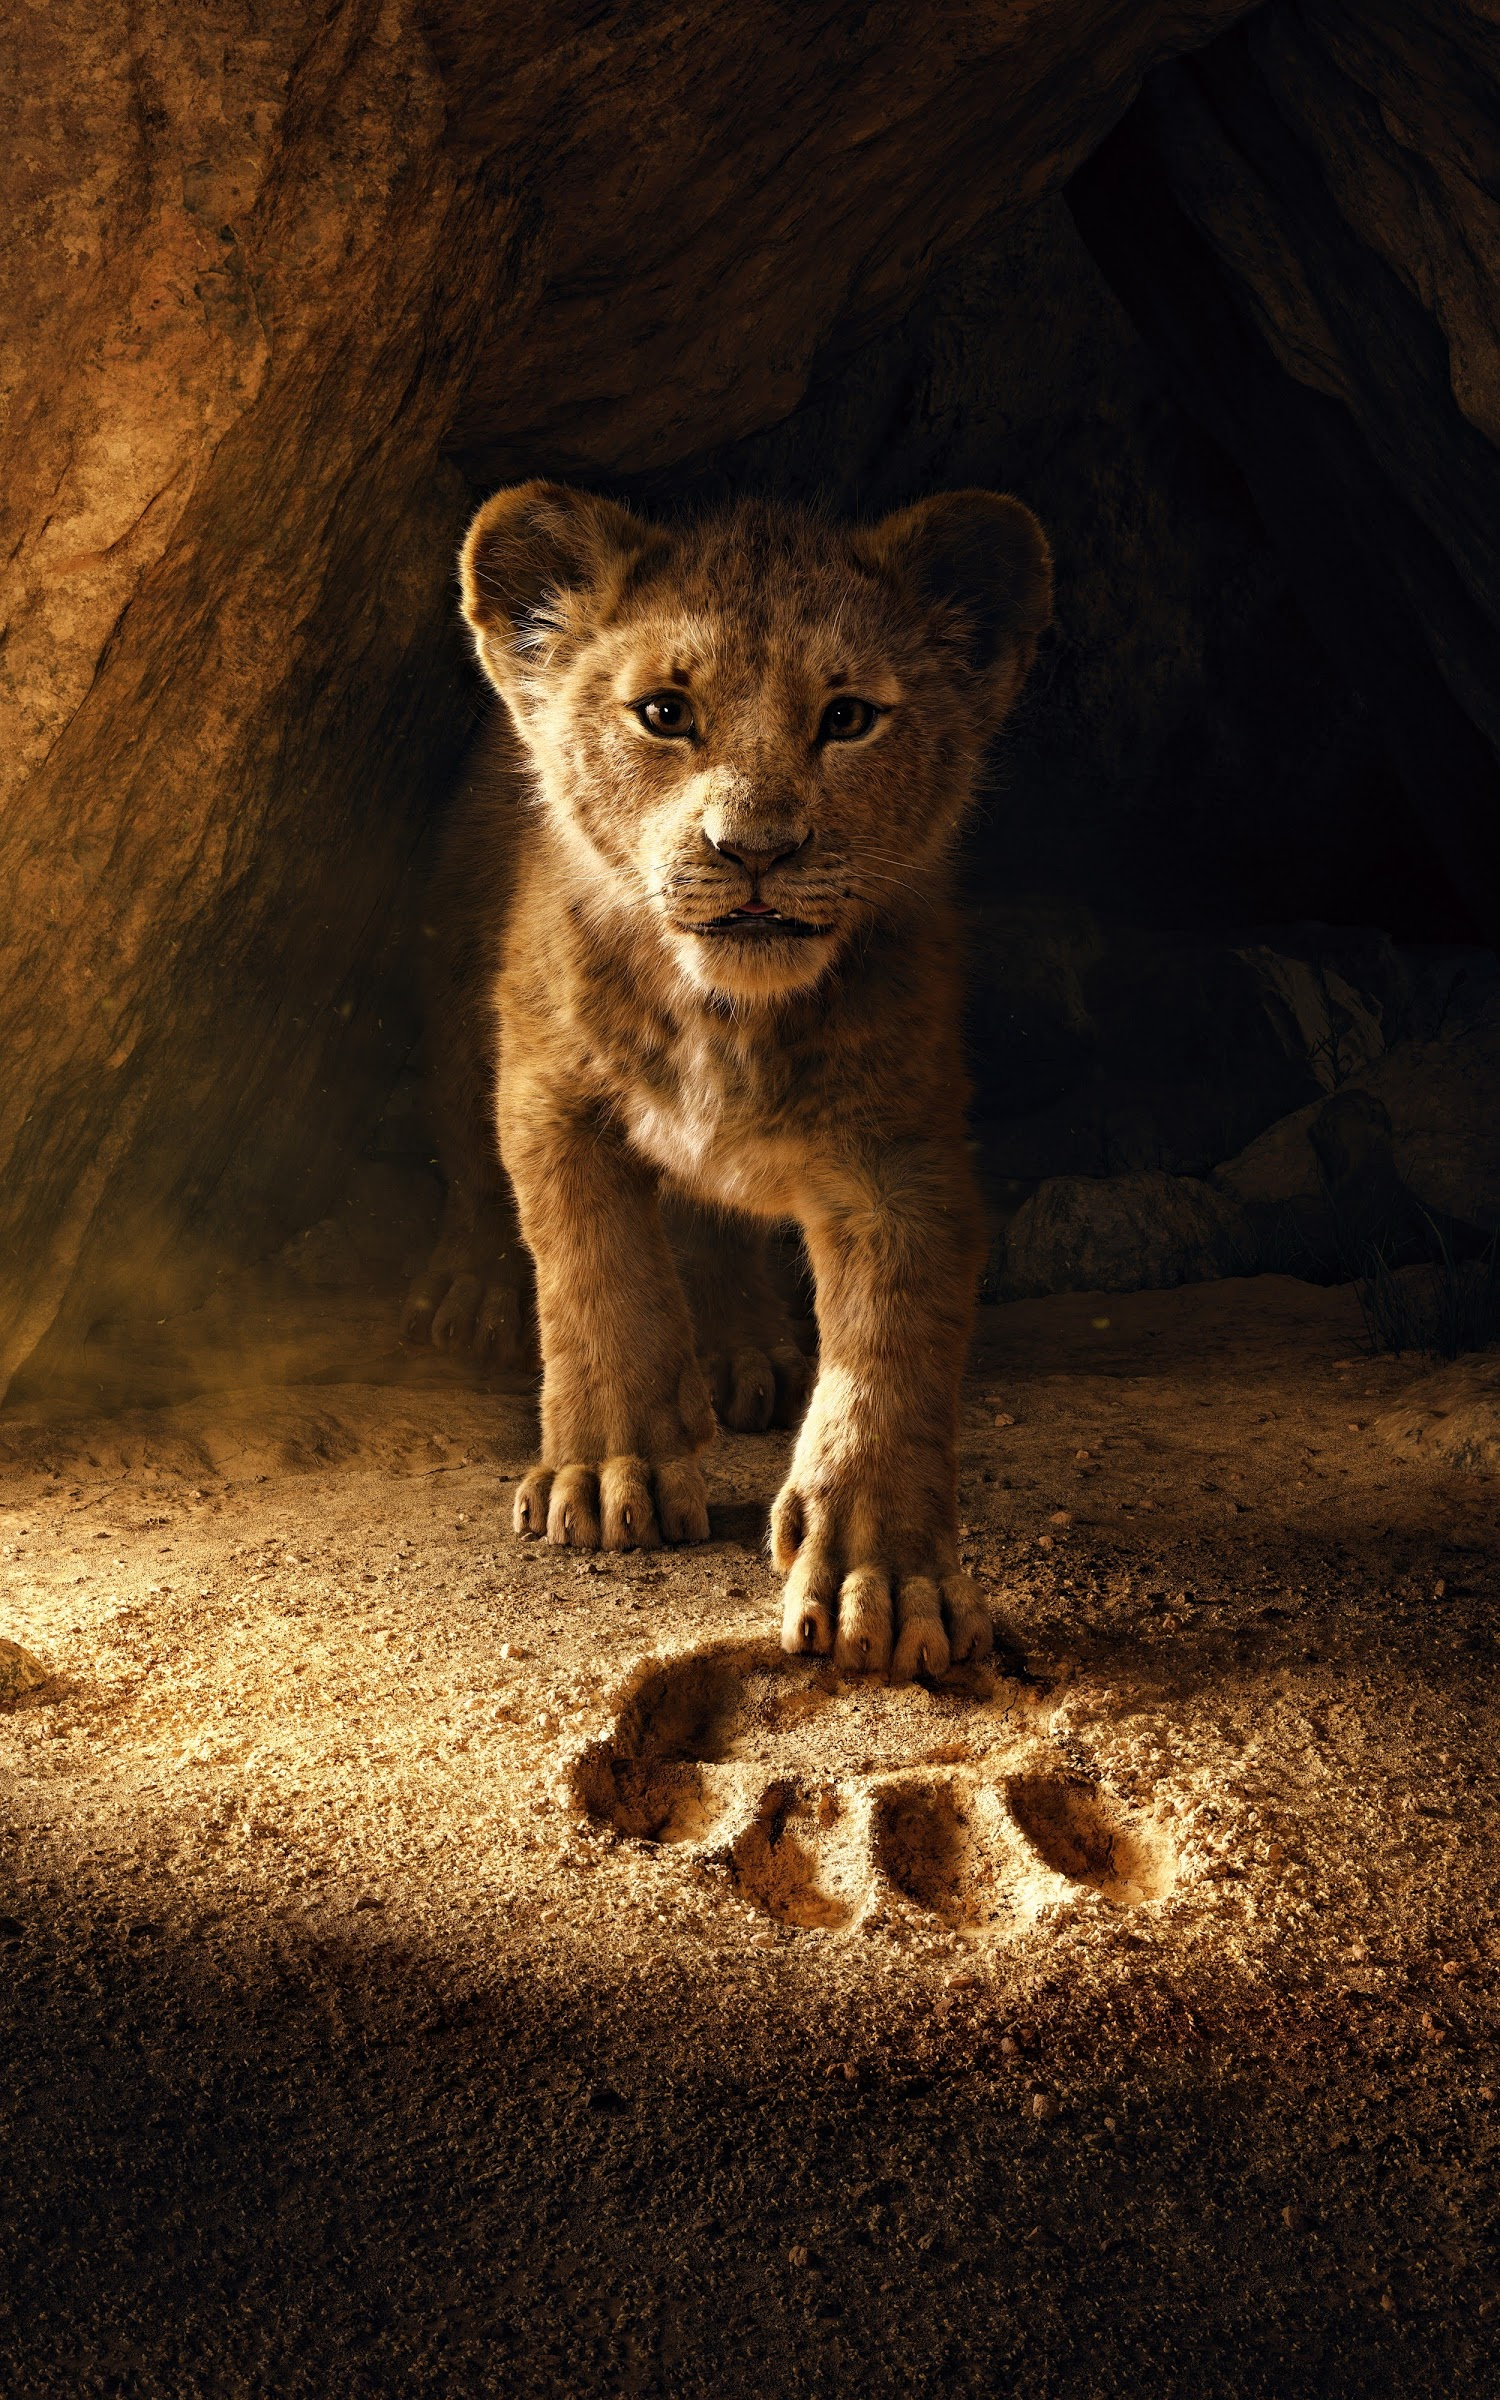 The Lion King (2019) wallpaper 4K Movies Category